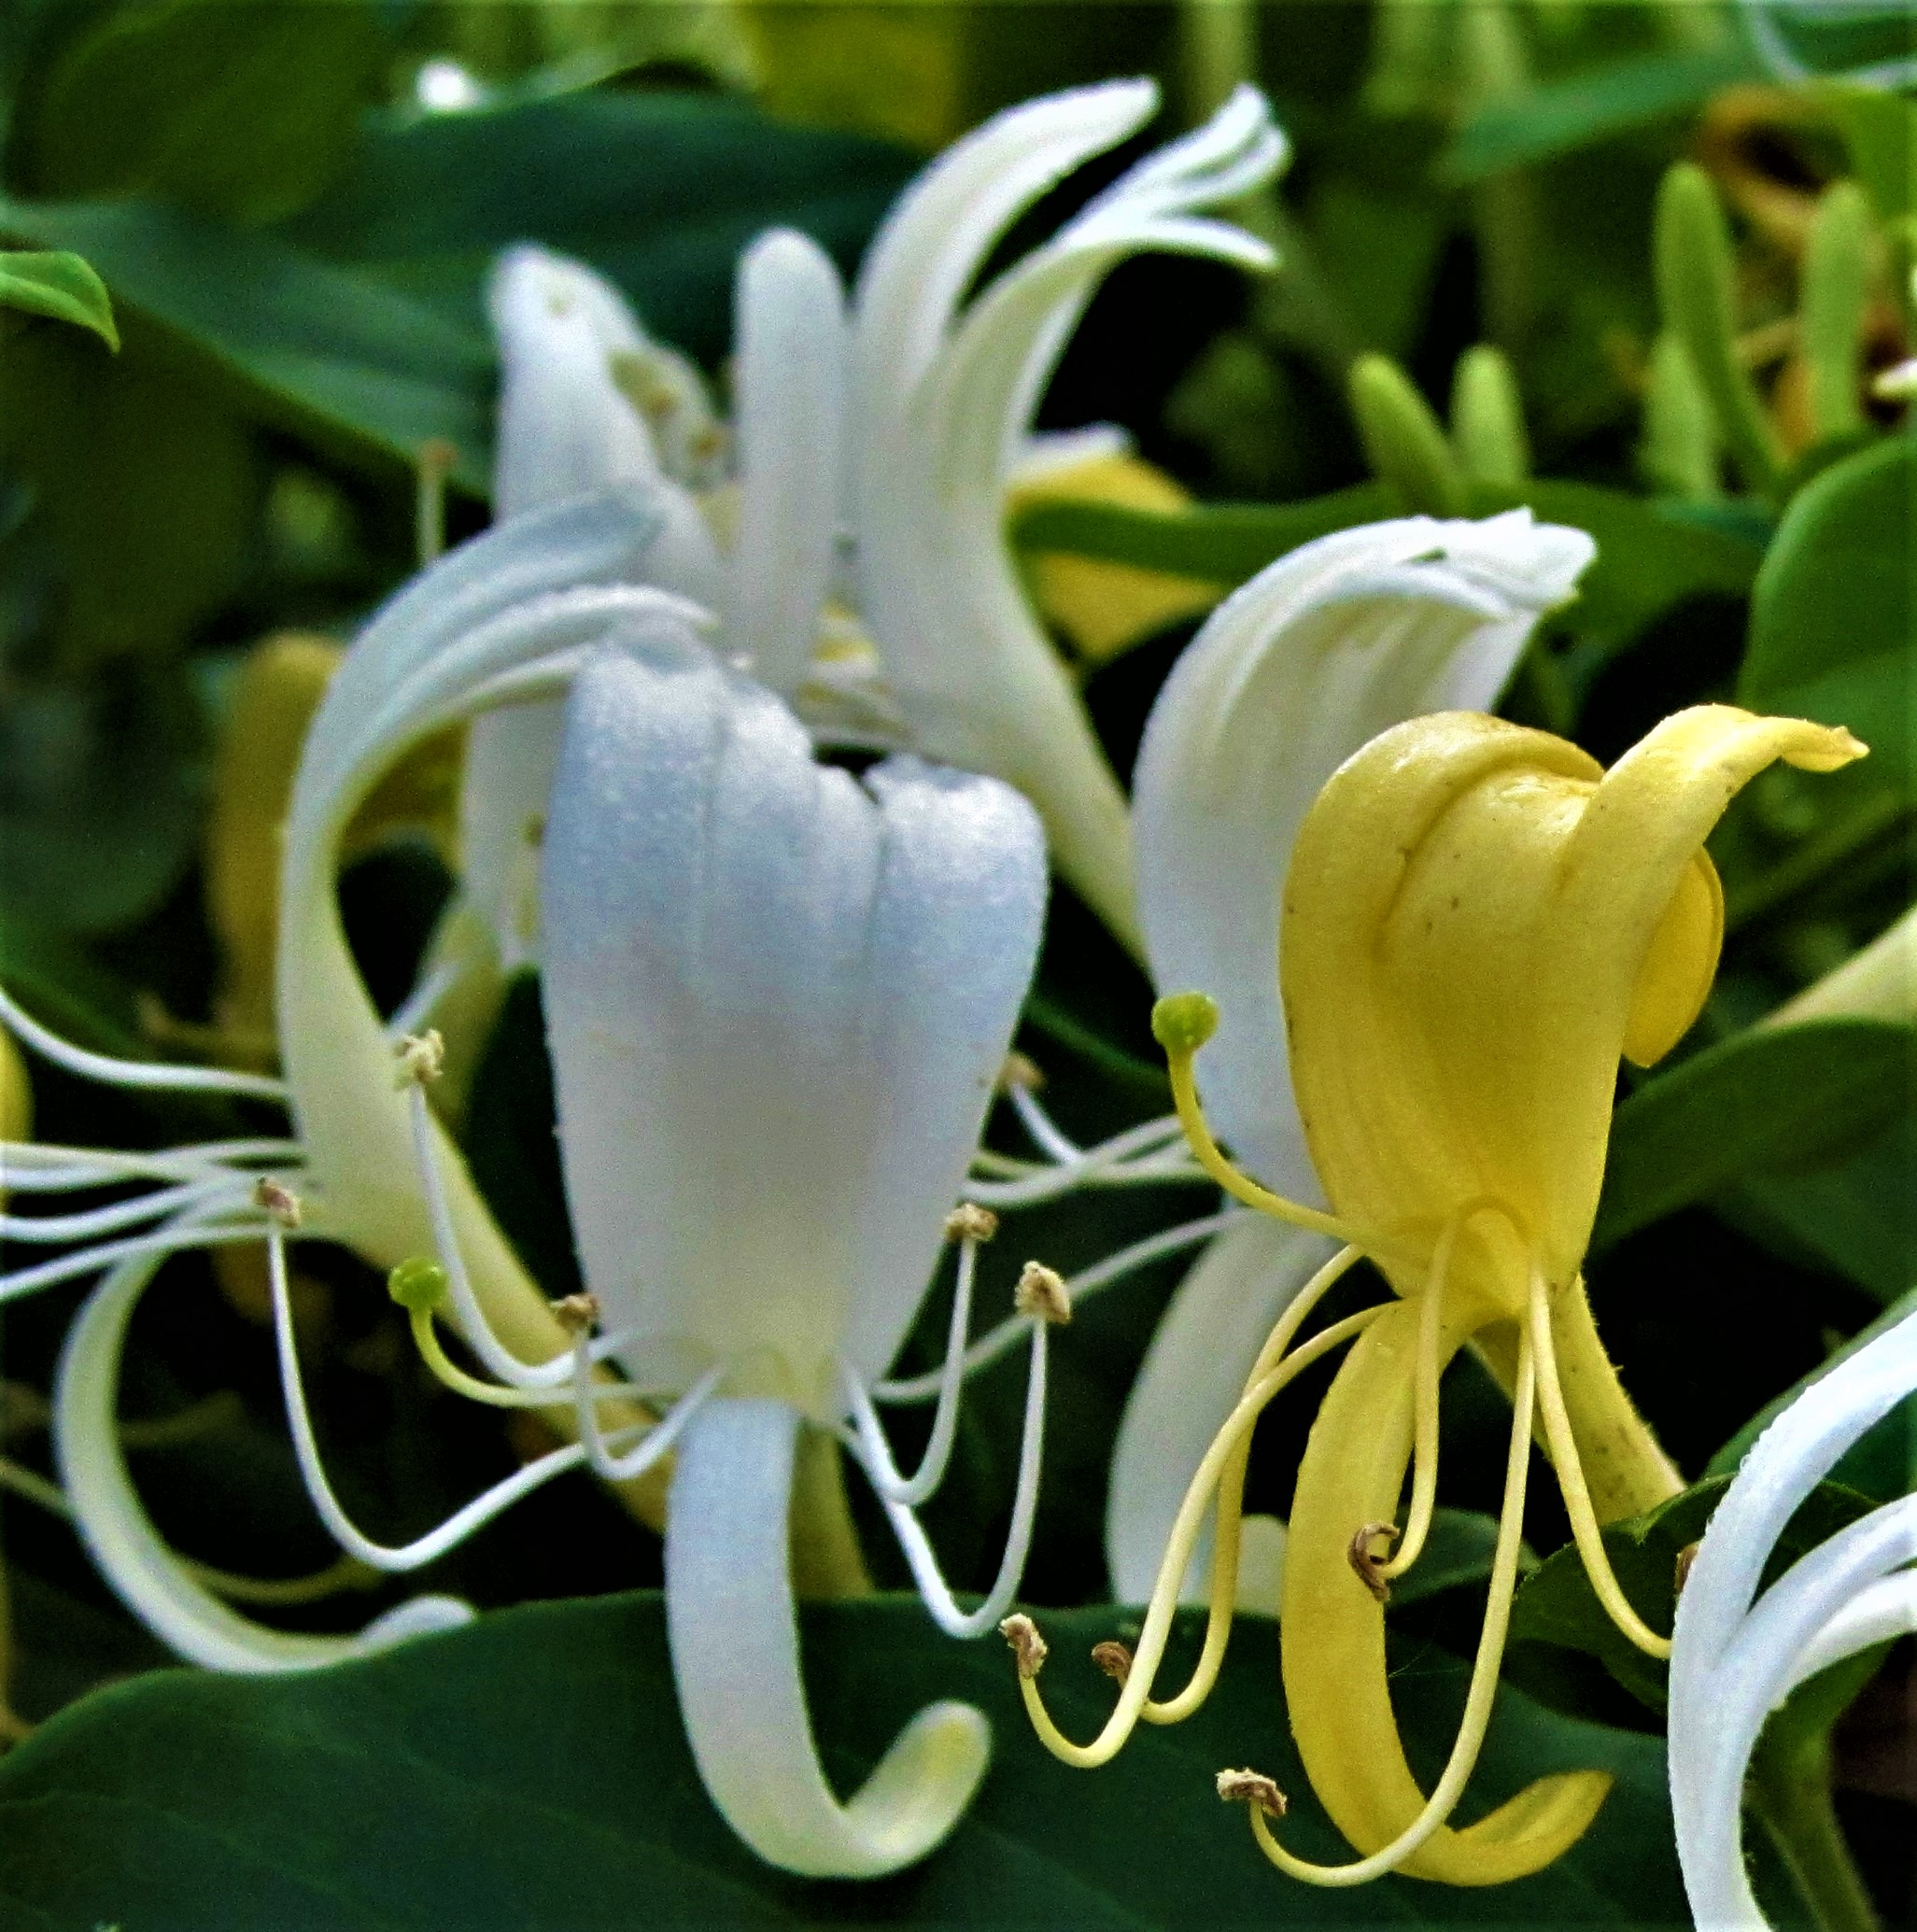 Honeysuckle blooming closeup